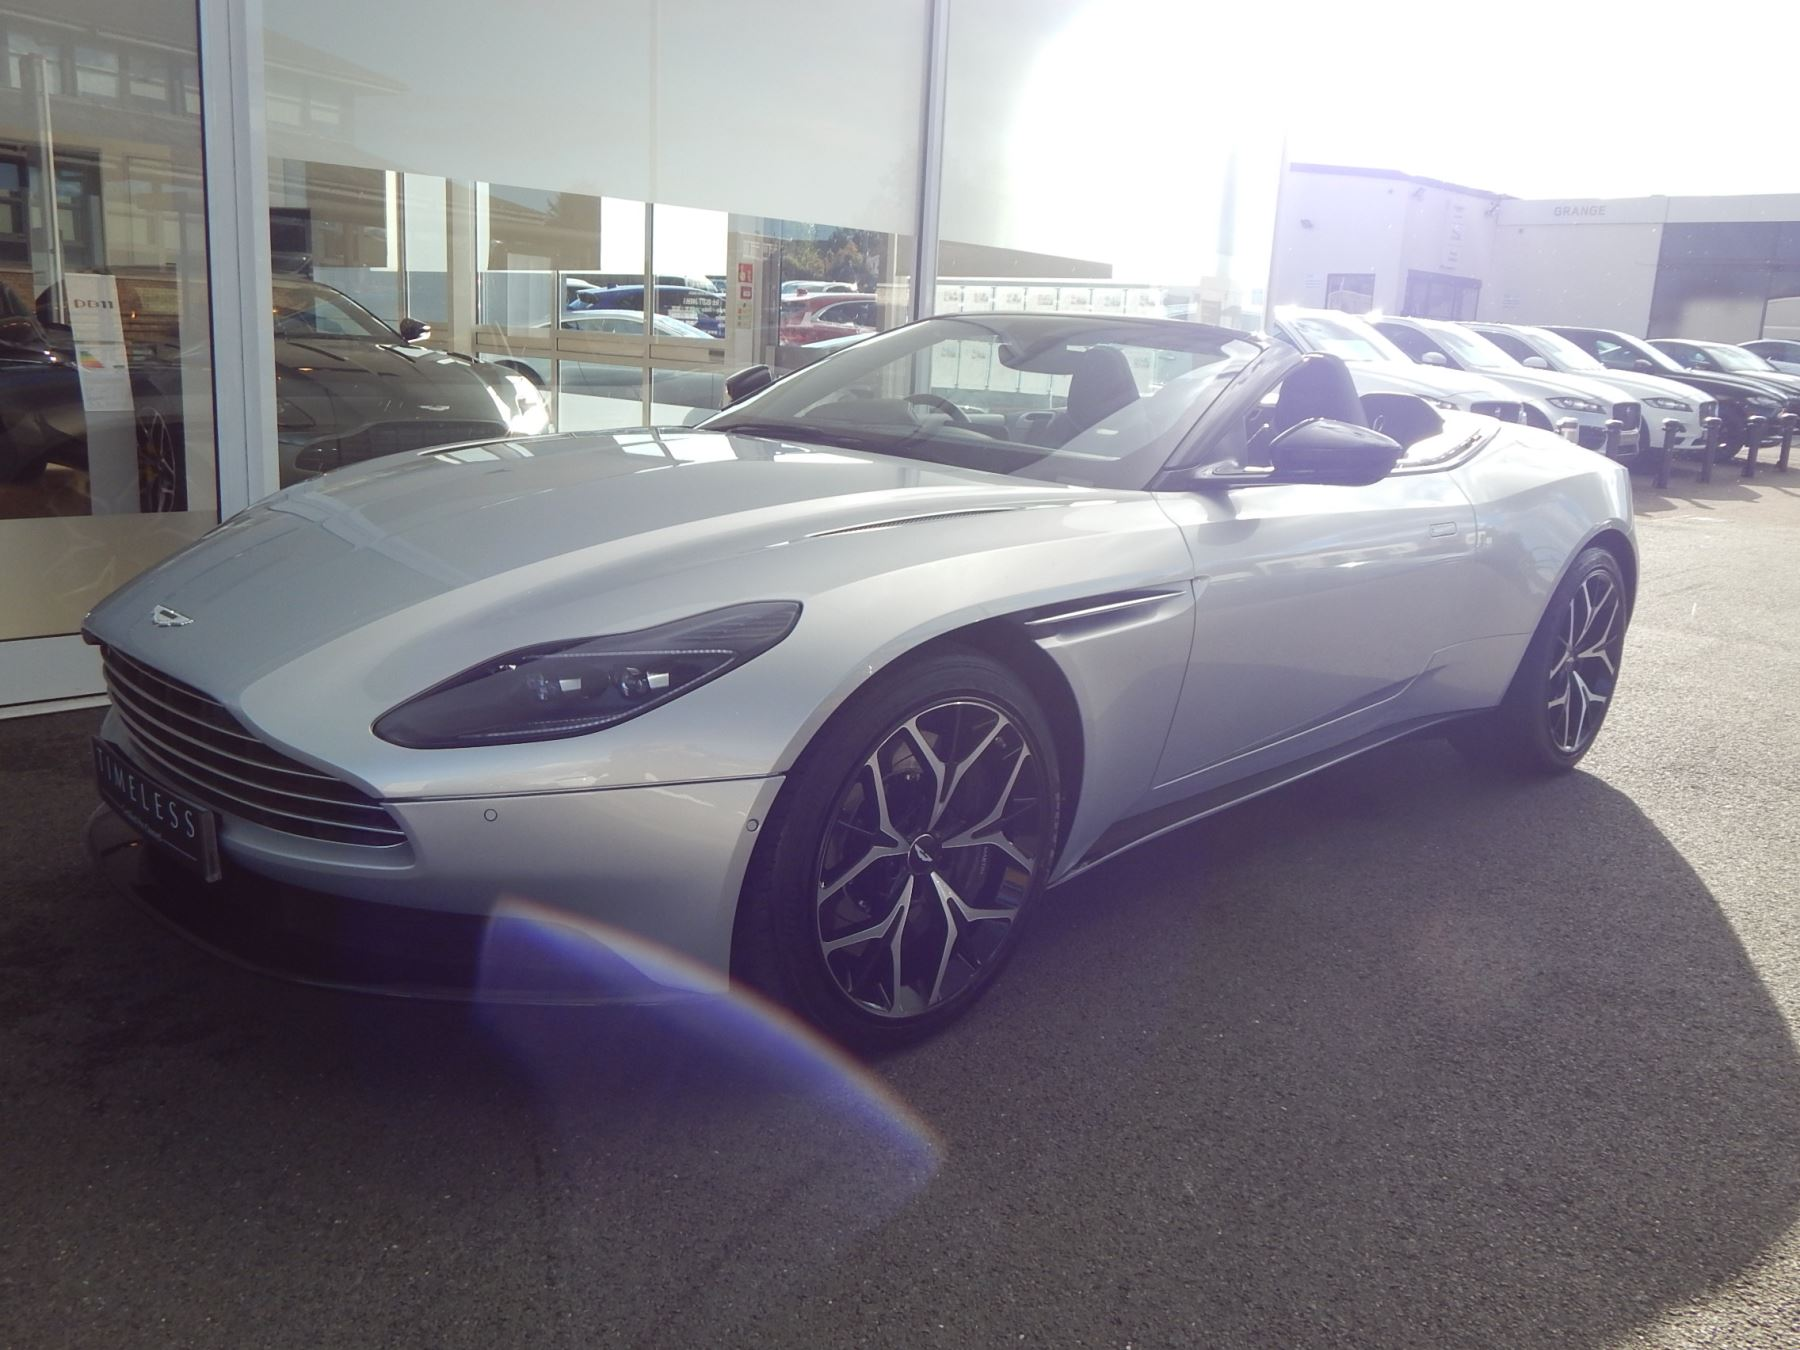 Aston Martin DB11 Volante 4.0 V8 Twin Turbo image 7